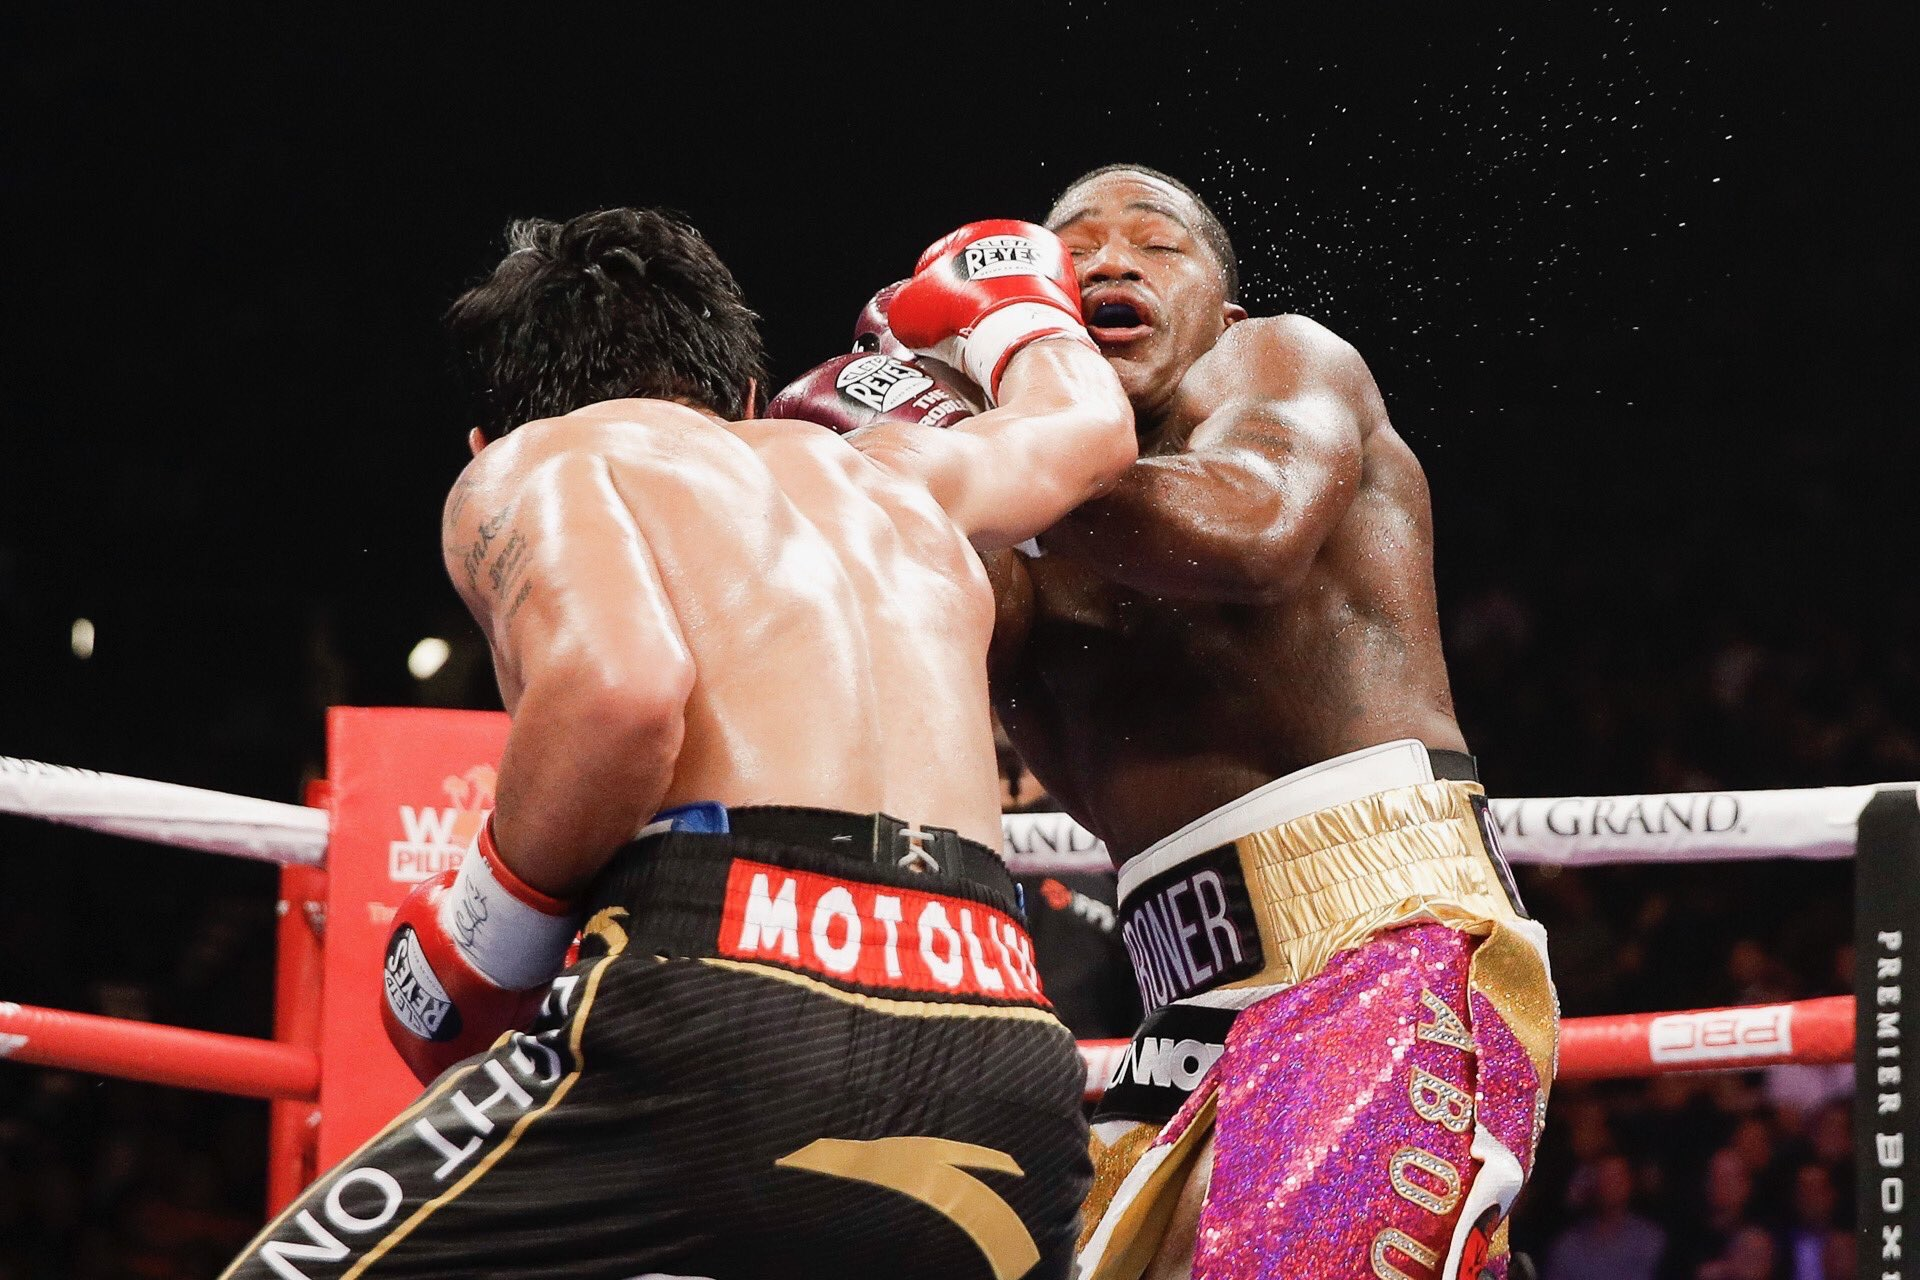 F20FB55A 5BF6 4B28 AE70 018E0175332F - Adrien Broner Engages In Vulgar, Accusatory Rant After Loss To Manny Pacquiao